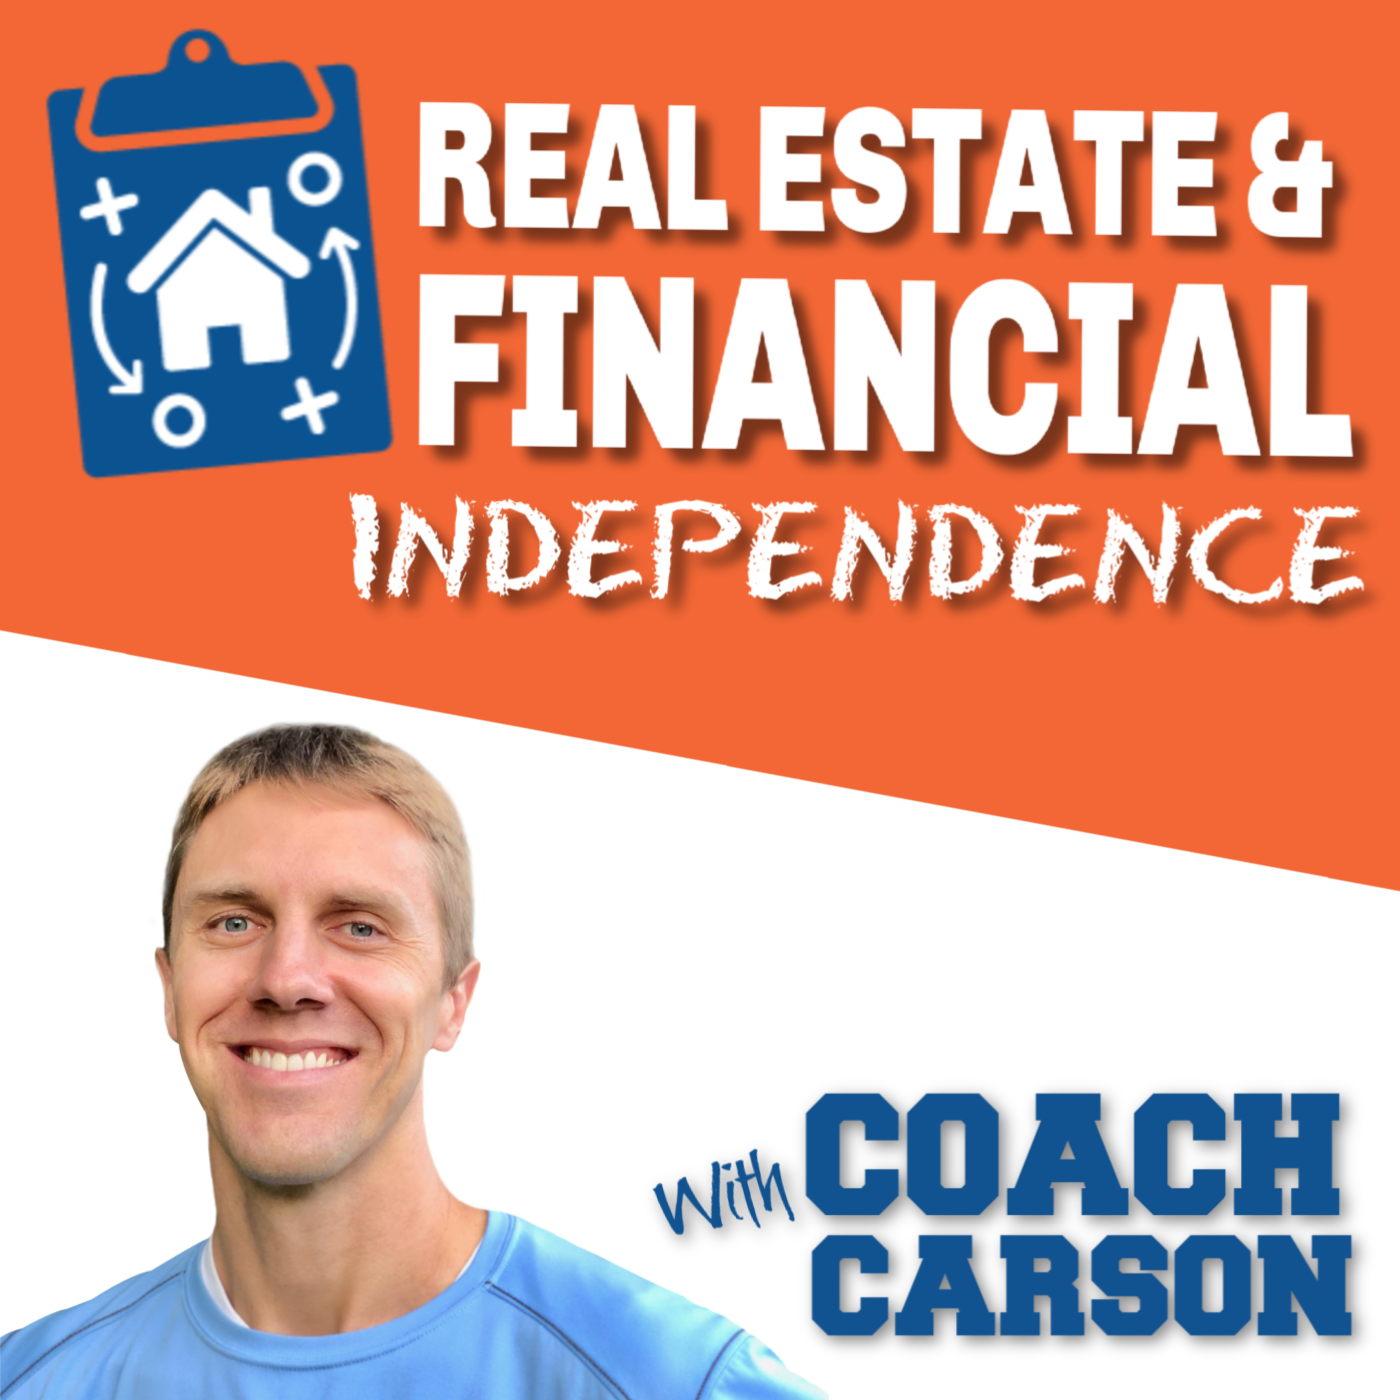 Real Estate & Financial Independence Podcast show art